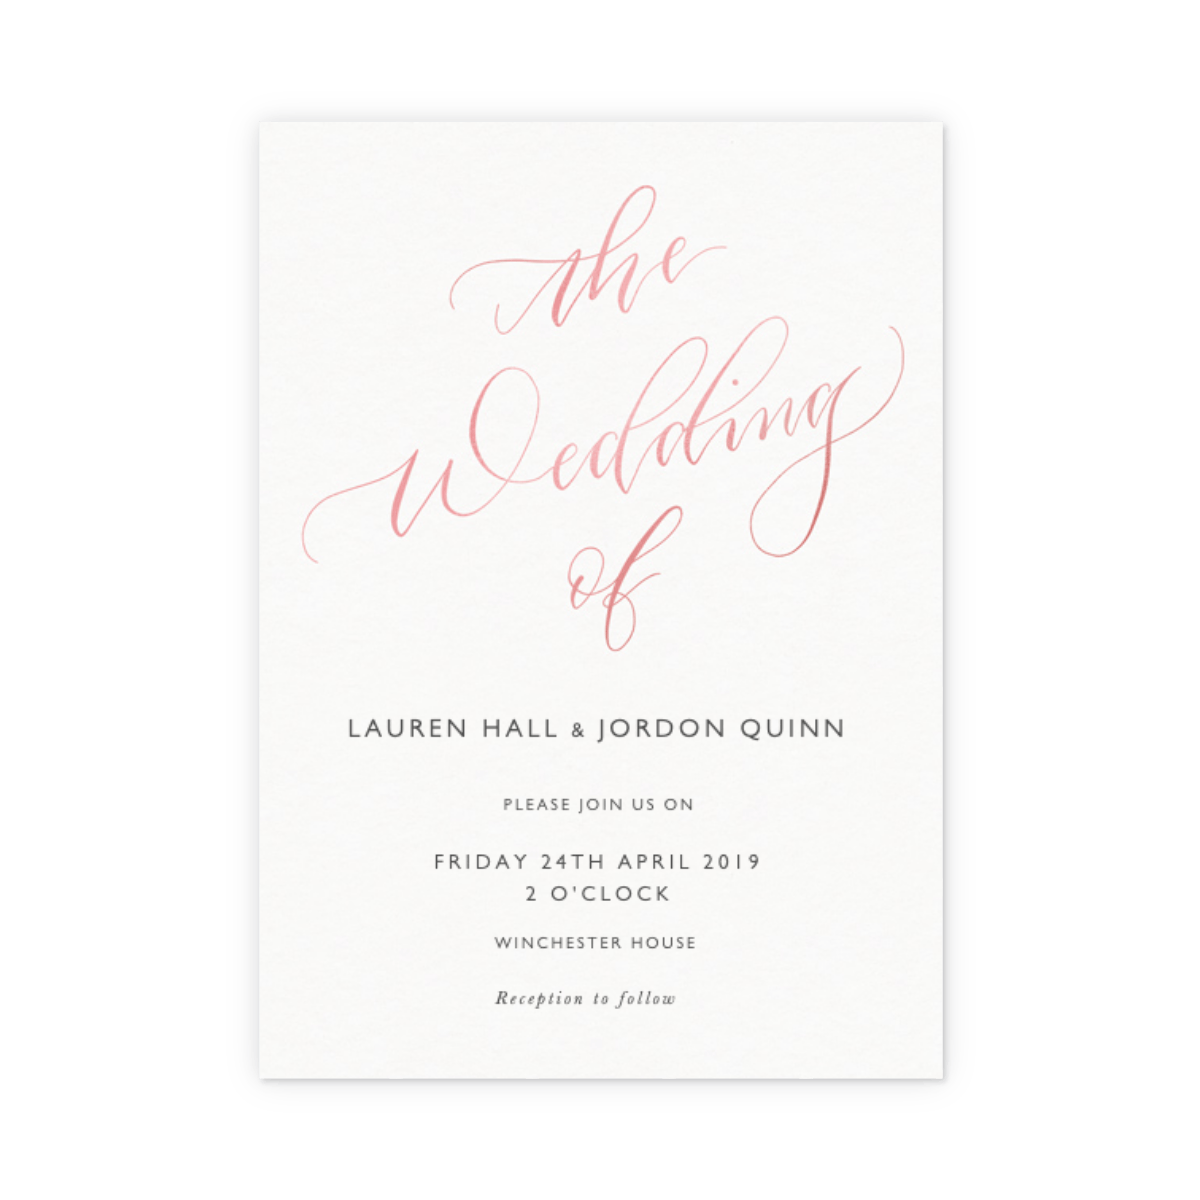 Https%3a%2f%2fwww.papier.com%2fproduct image%2f68595%2f4%2fthe wedding of calligraphy 16265 front 1552578928.png?ixlib=rb 1.1